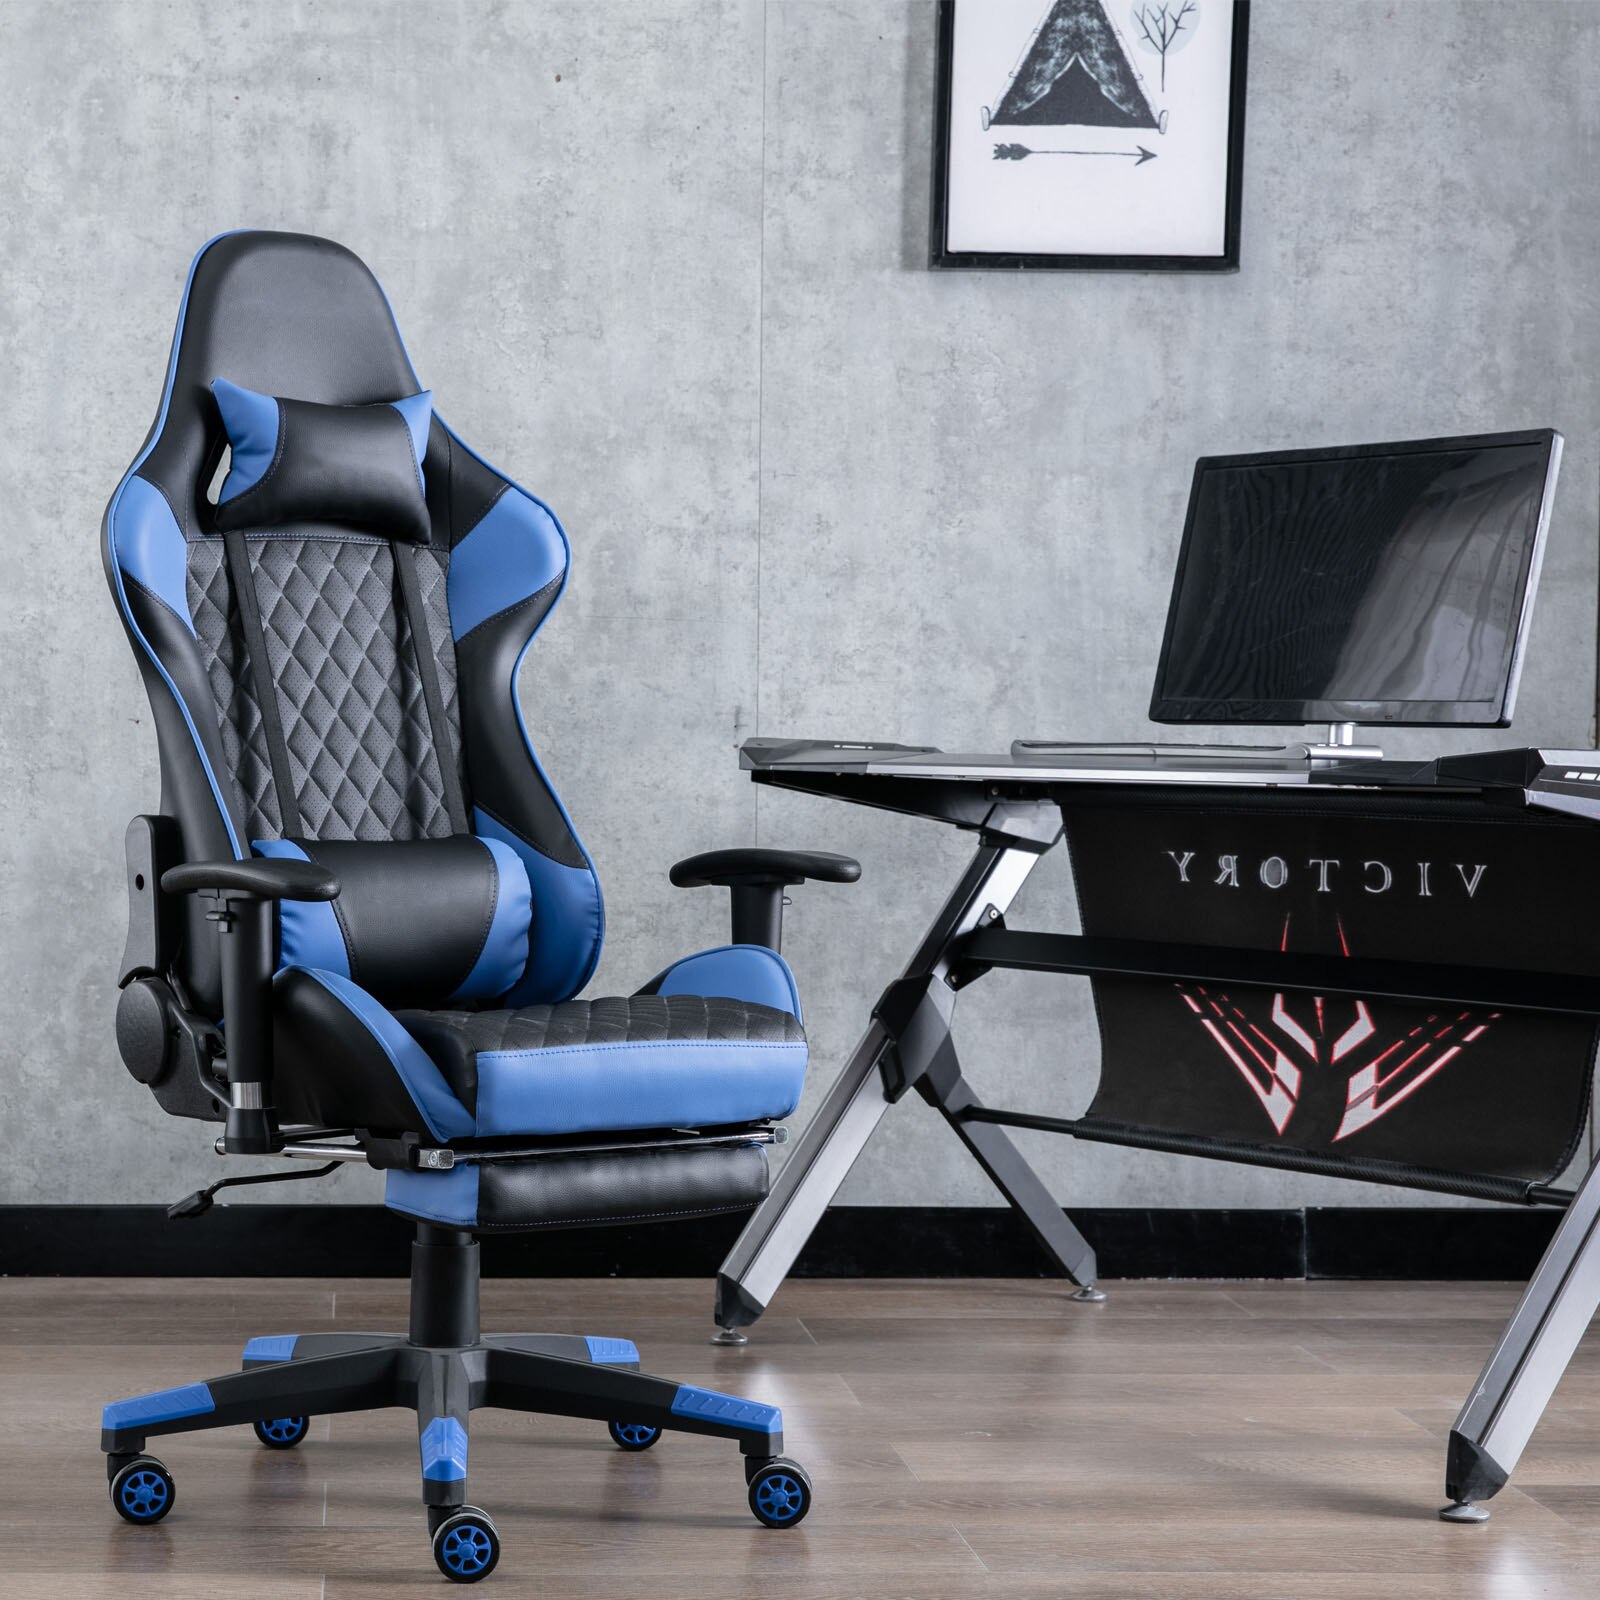 Hd3d9aefaf2b742bab9b795334a732150Y - Gaming Chair Computer Armchair Adjustable Armrest And Footrest PVC Household Office Chair Ergonomic Computer Gamer Chair